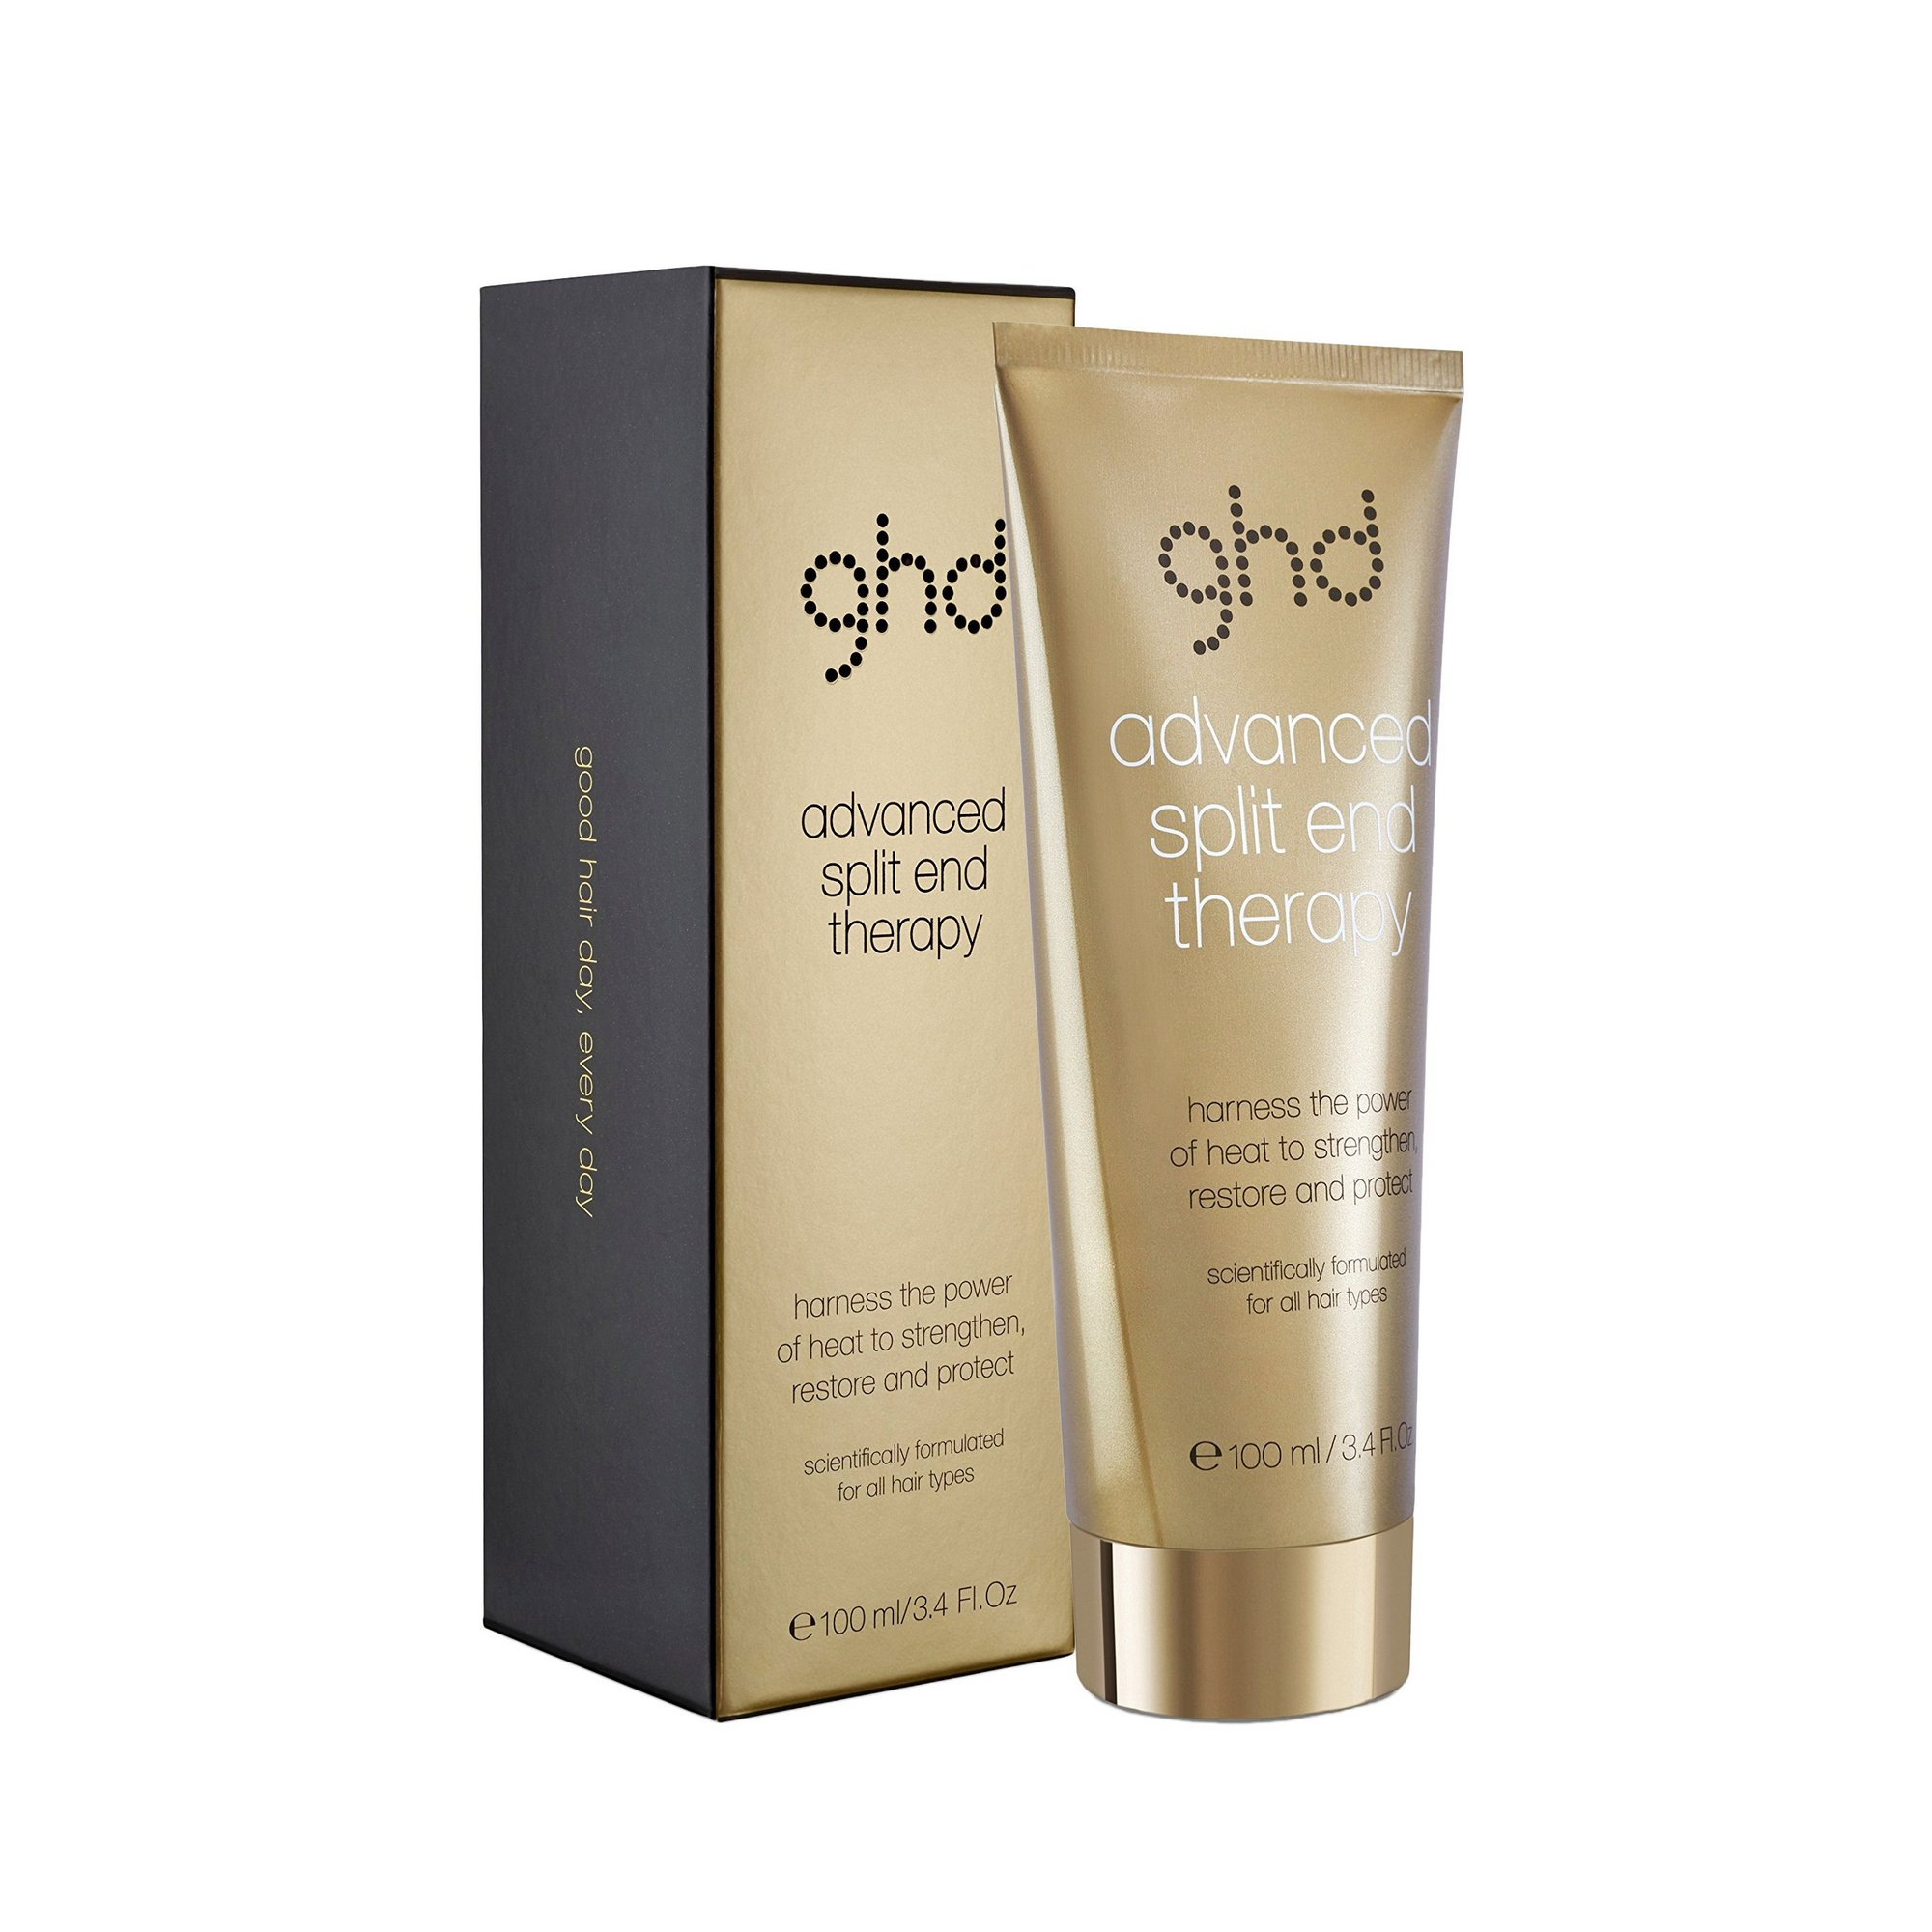 Image of ghd Advanced Split End Therapy